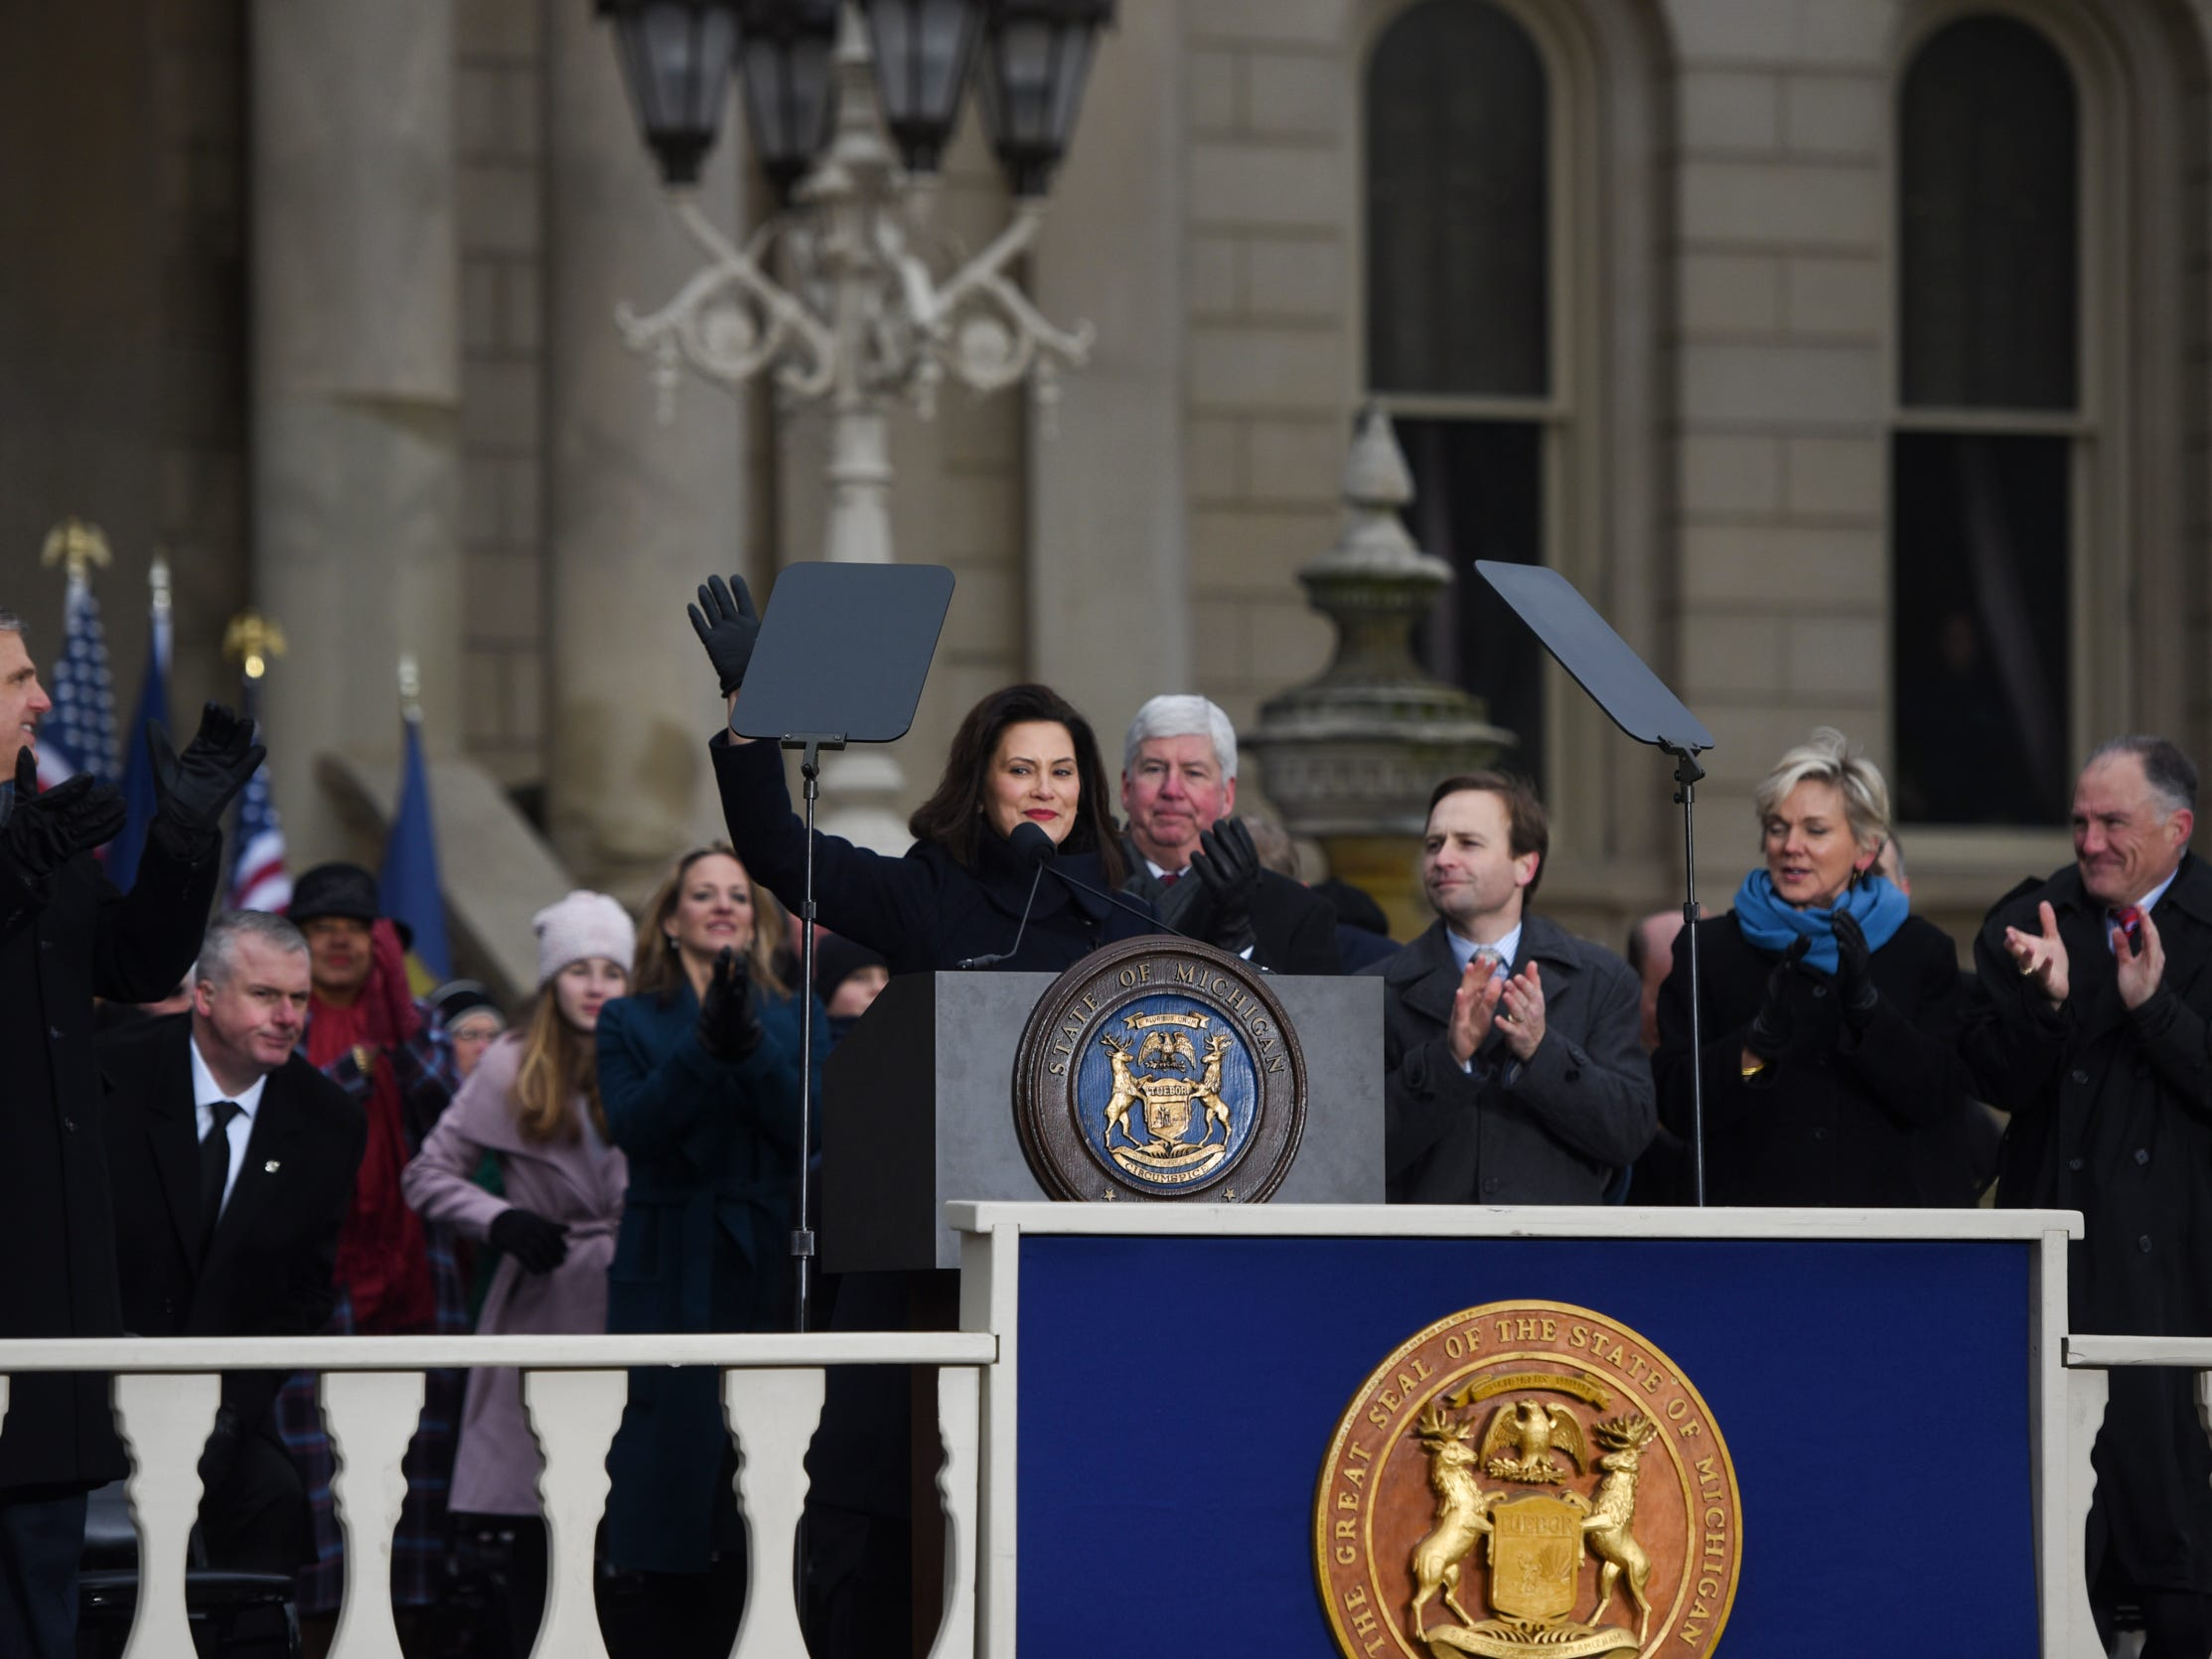 Michigan Governor Gretchen Whitmer hugs Lt. Gov. thanks her supporters Tuesday, Jan. 1, 2019, after being sworn-in as Michigan's 49th governor on the steps of the State Capitol in Lansing, Michigan.  [AP Photo/Matthew Dae Smith/Lansing State Journal]